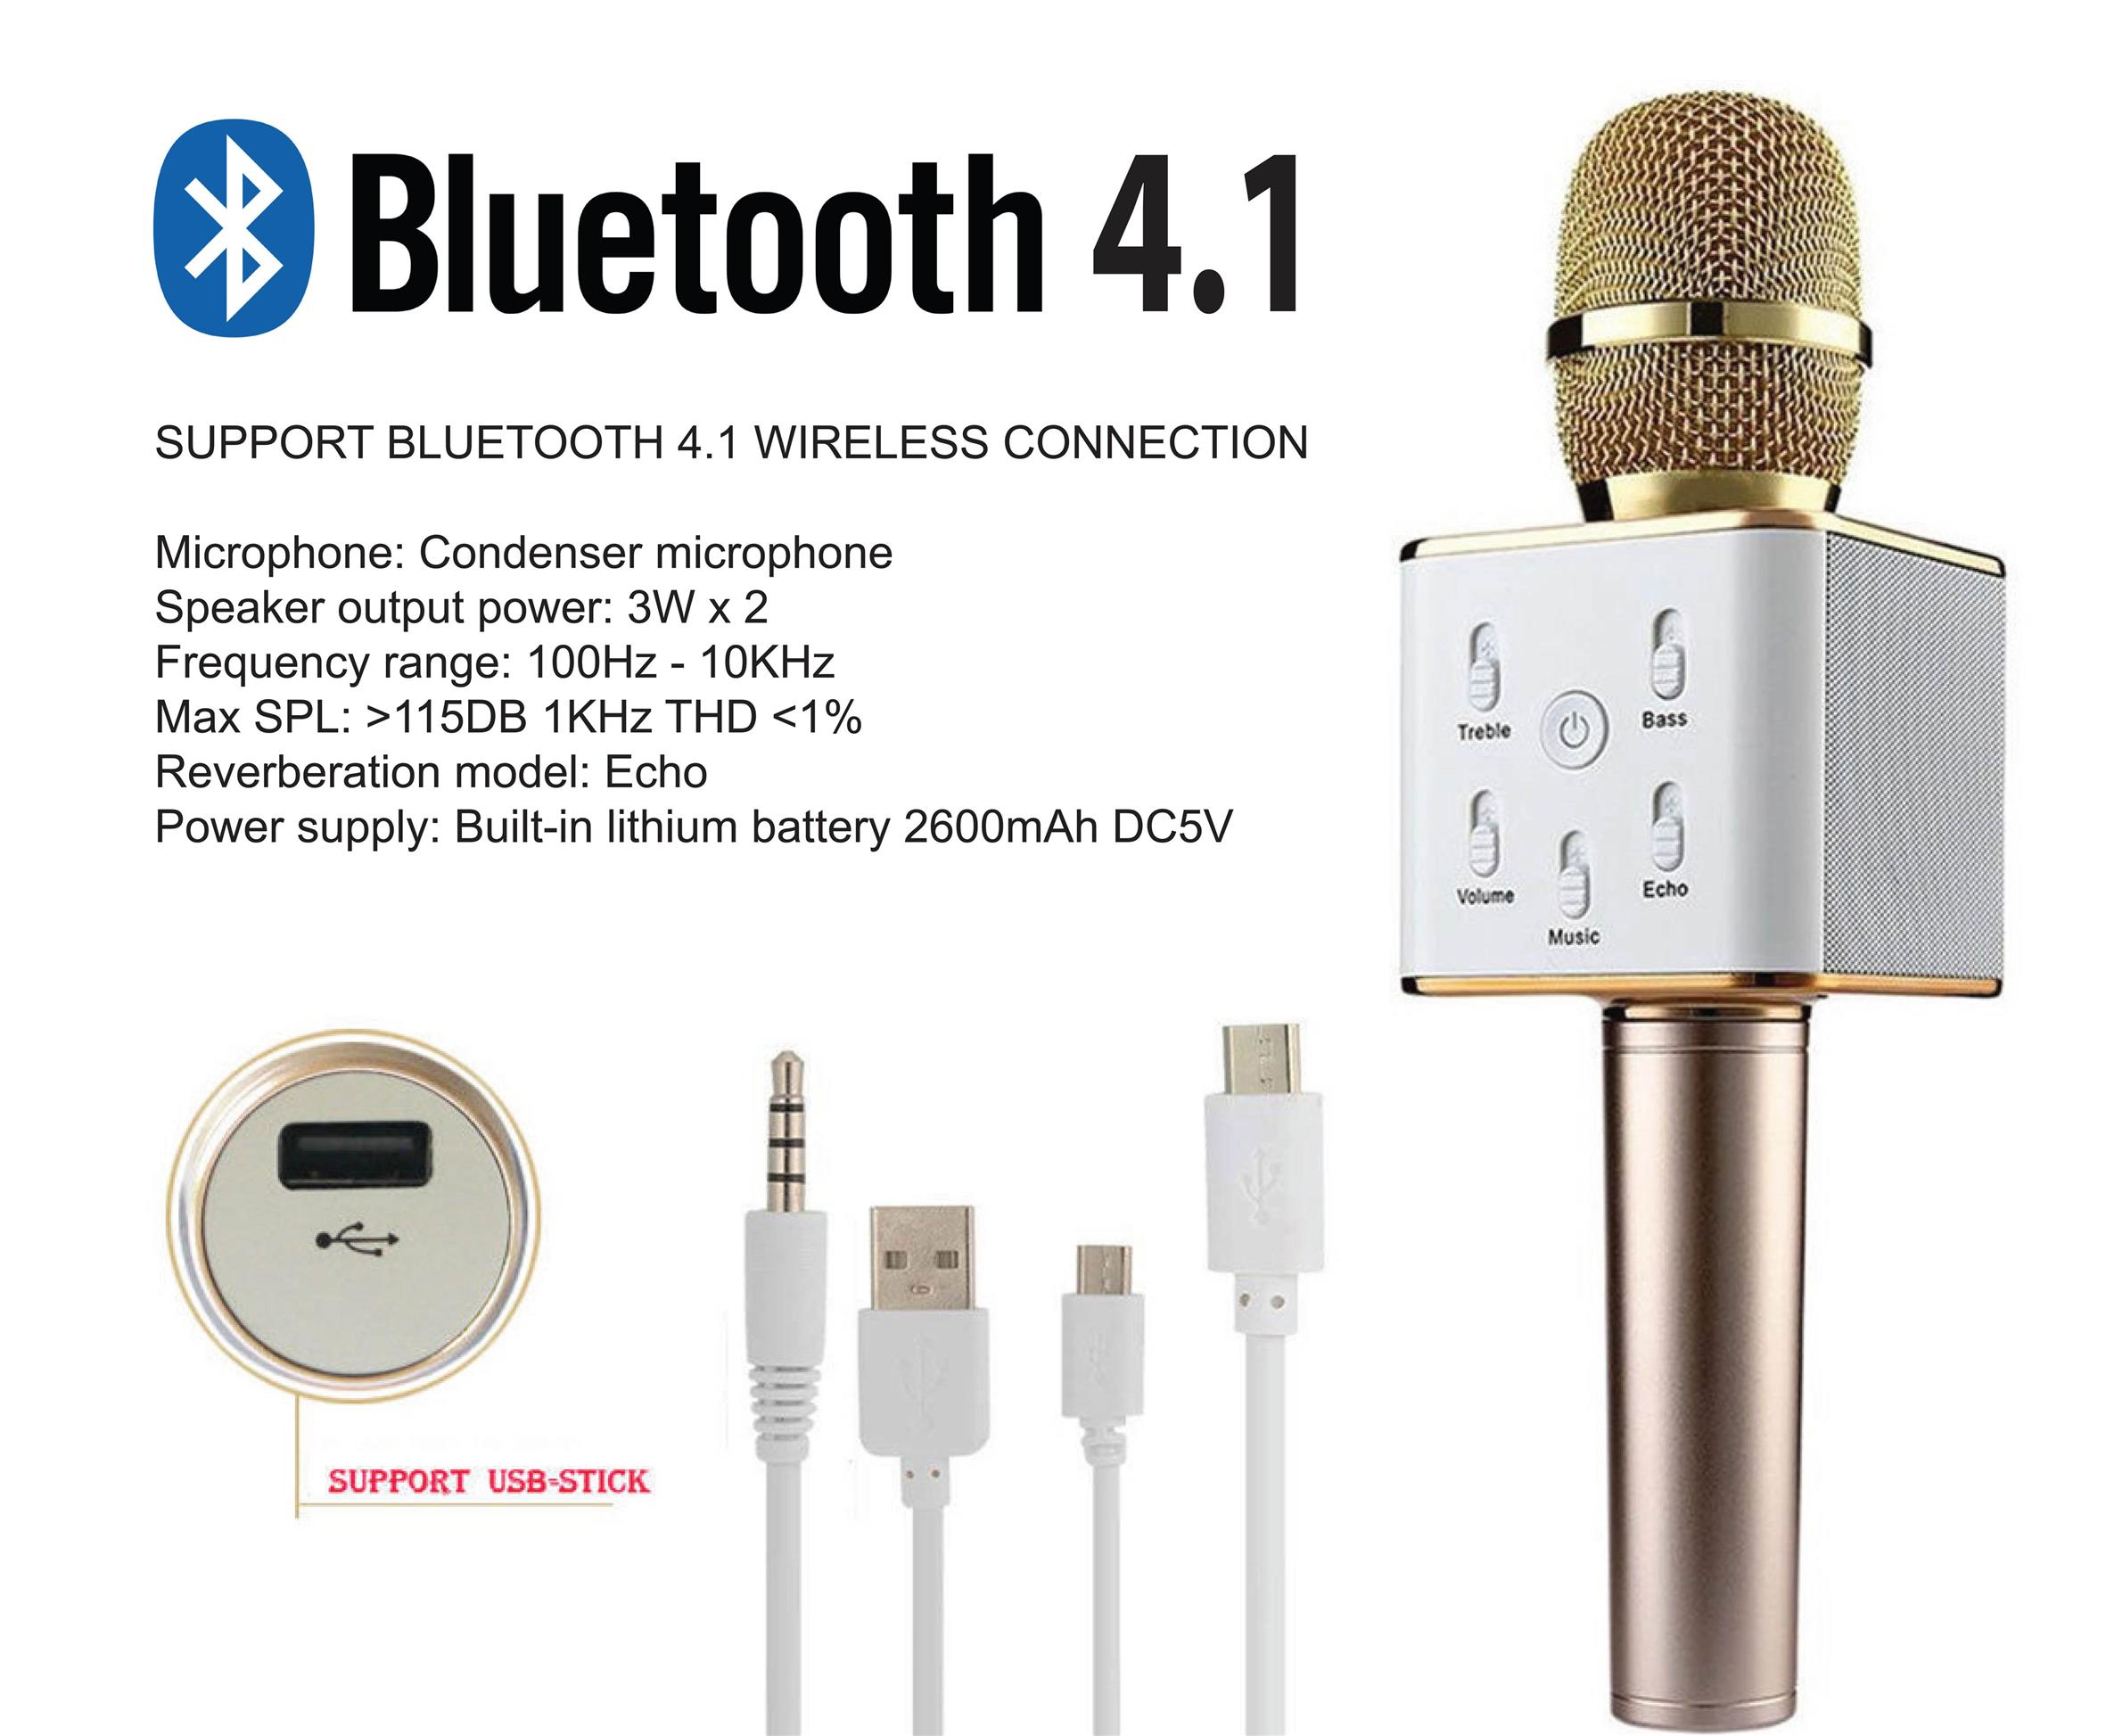 Wireless Bluetooth Microphone Tablet Wire Center Murray 20amp Singlepole Type Mpgt Gfcicircuit Breaker Online Shopping Site Buy Mobiles Electronics Fashion Clothing Rh Wellbeing Within Shopclues Com Mini Karaoke Machine With